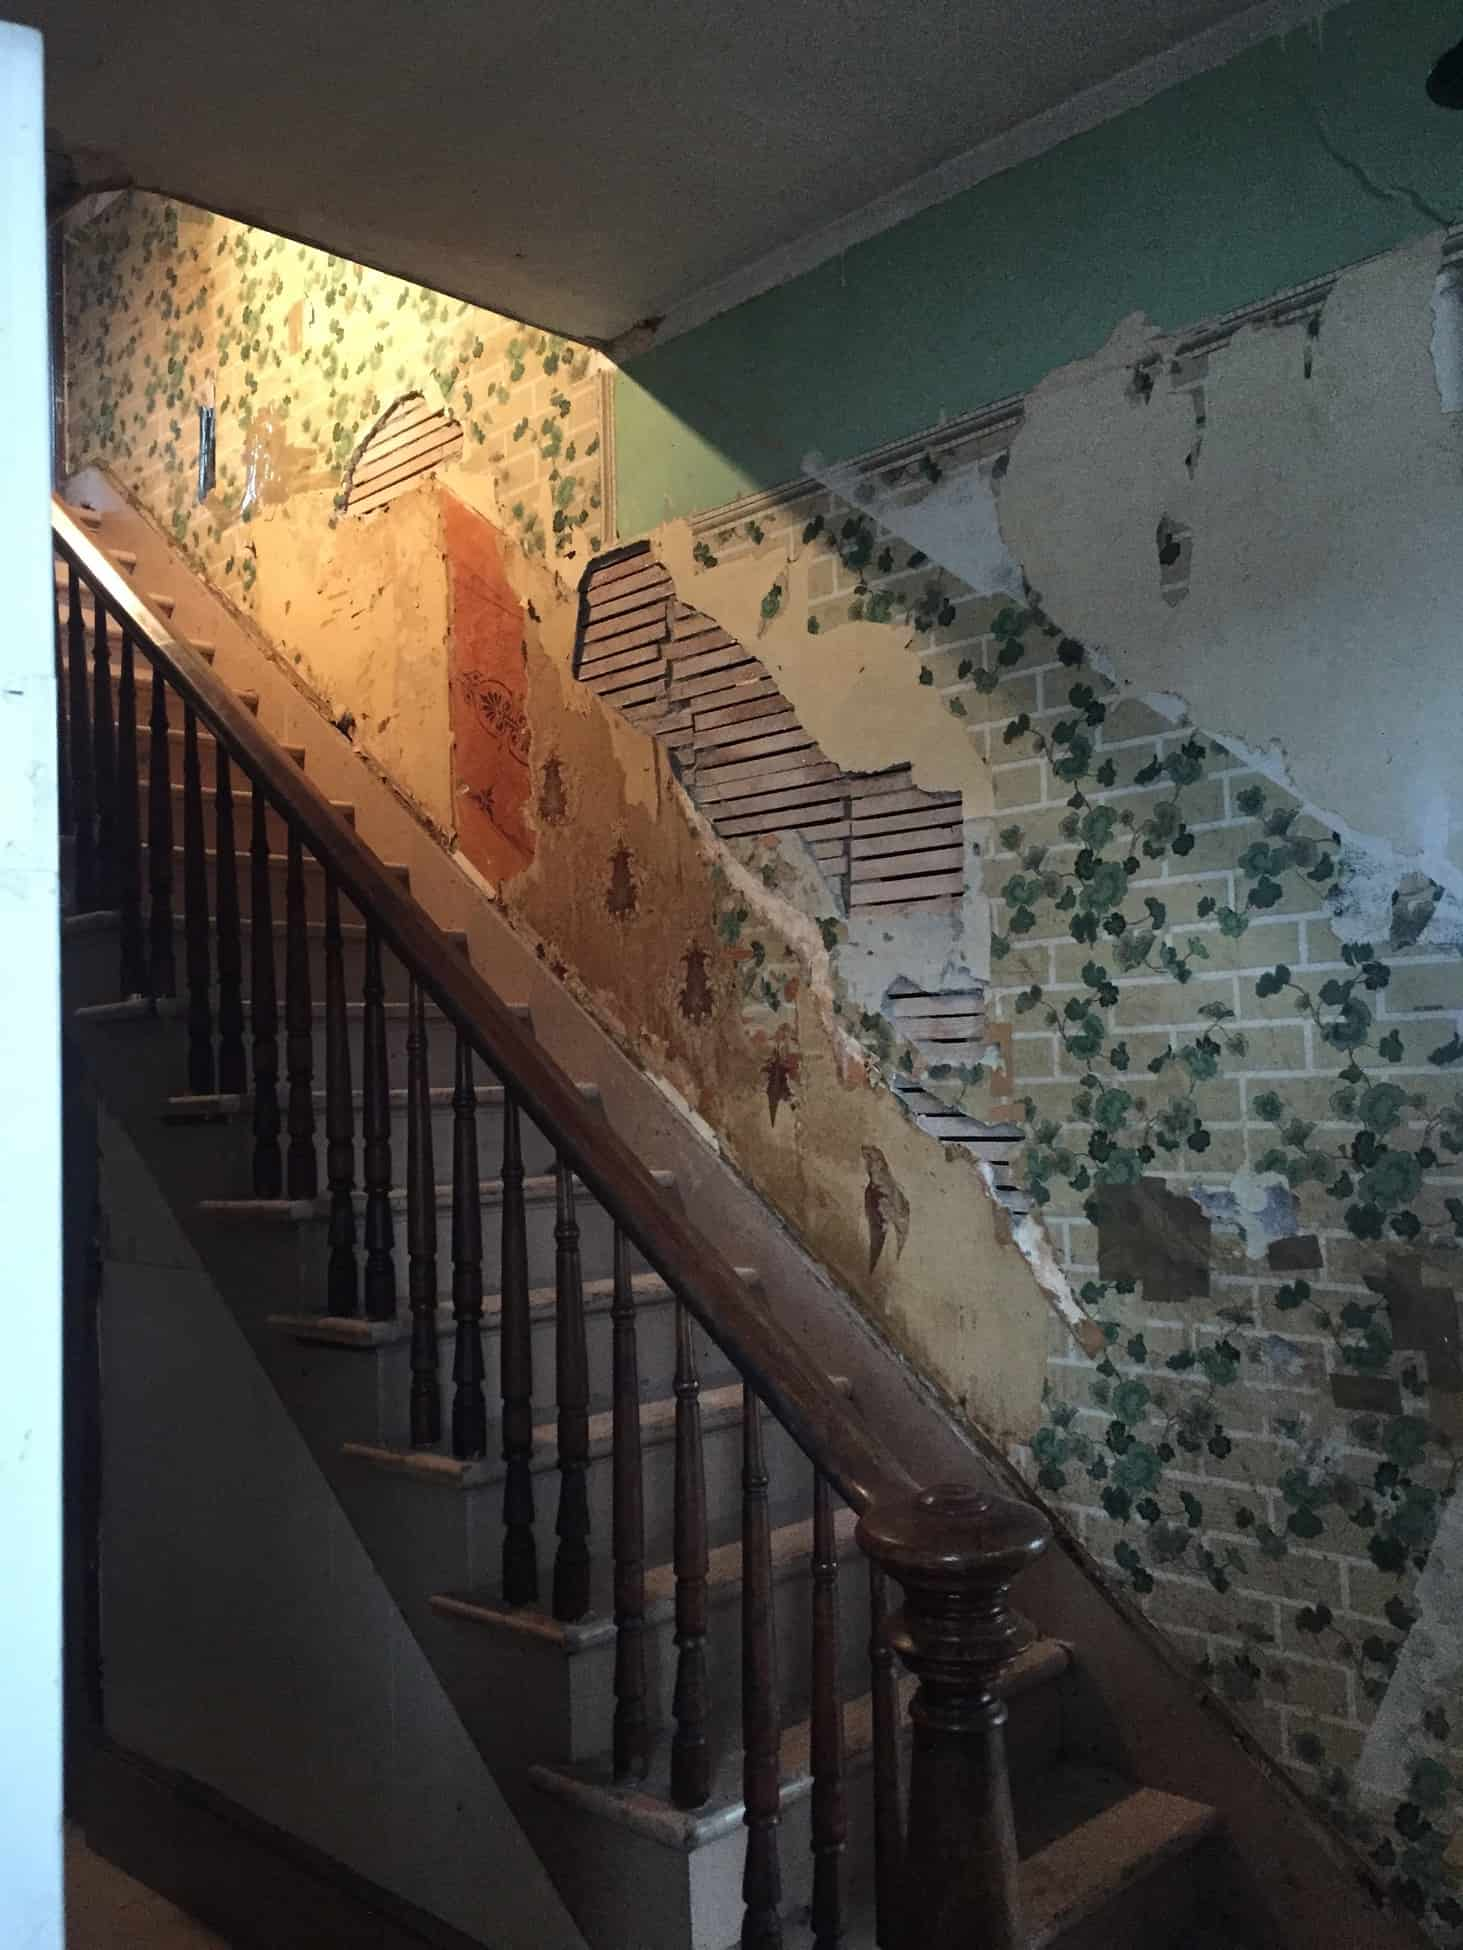 Layers of wallpaper and plaster at the Donaca House.